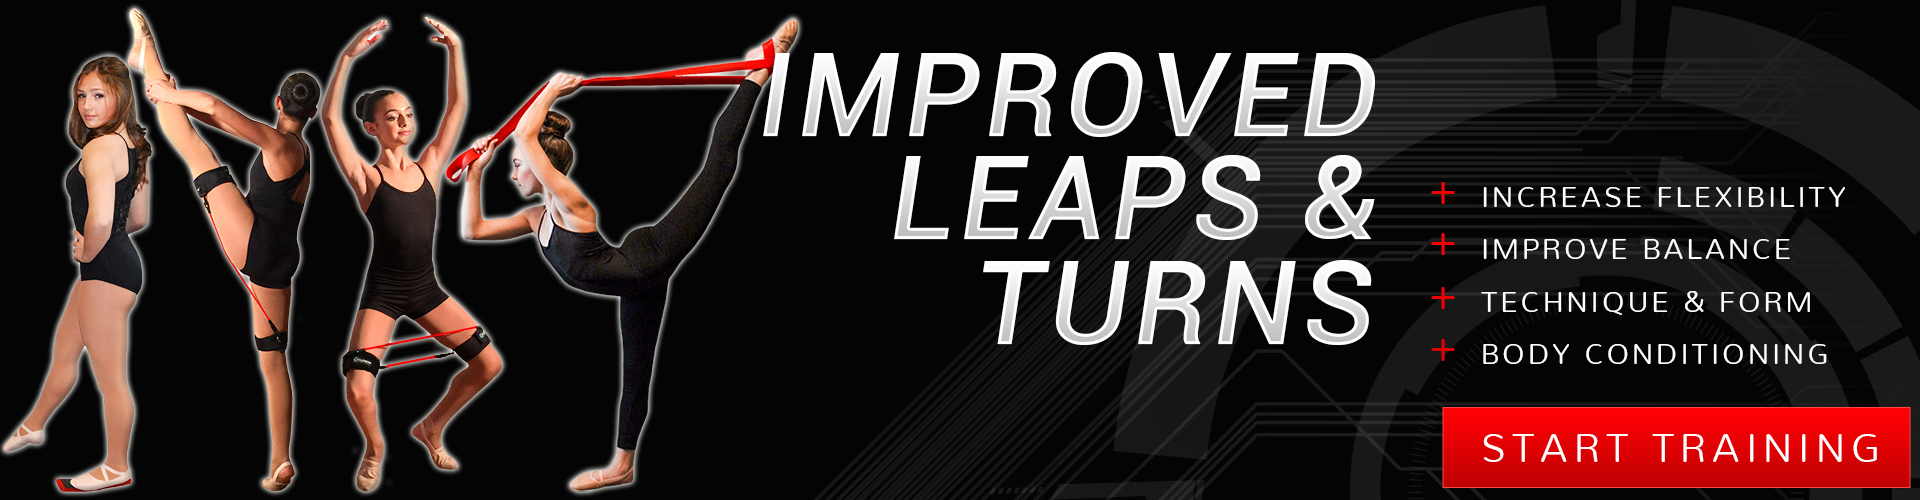 Improve leaps and turns in dance by increasing flexibility, improving balance, technique and form, and body conditioning by training with Kinetic Bands and our other dance products.